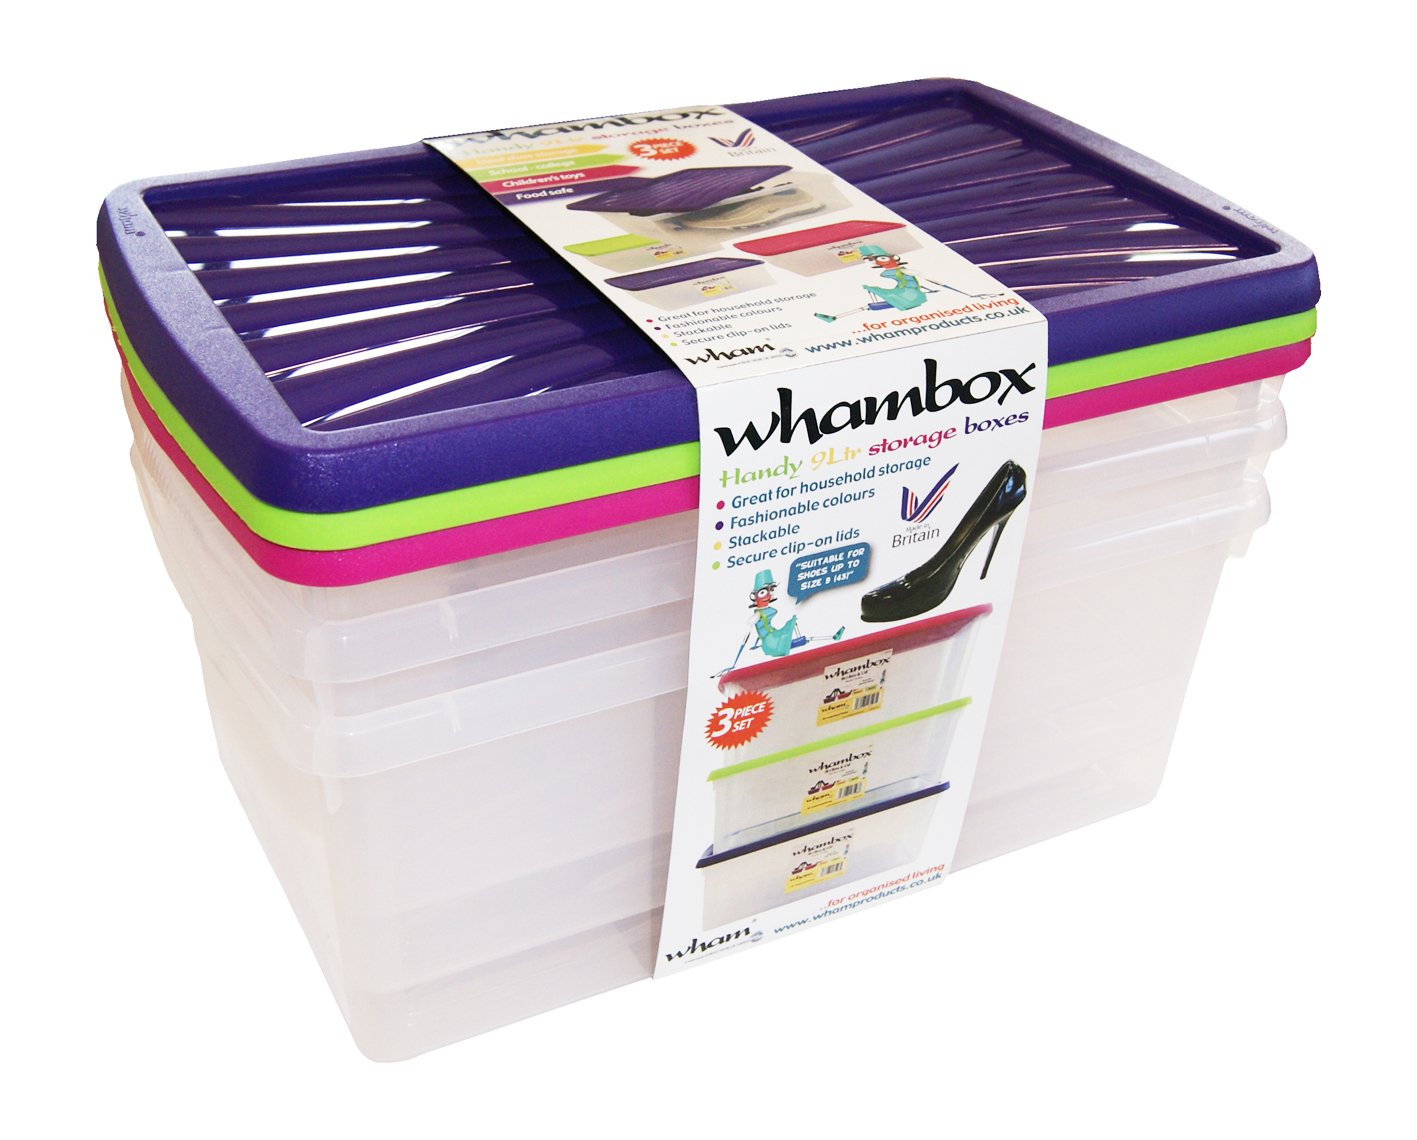 Wham 13129 Wham 9 Litre Box Storage Boxes Set of 3 Polypropylene Transparent Clear with Coloured Lids WHAM7